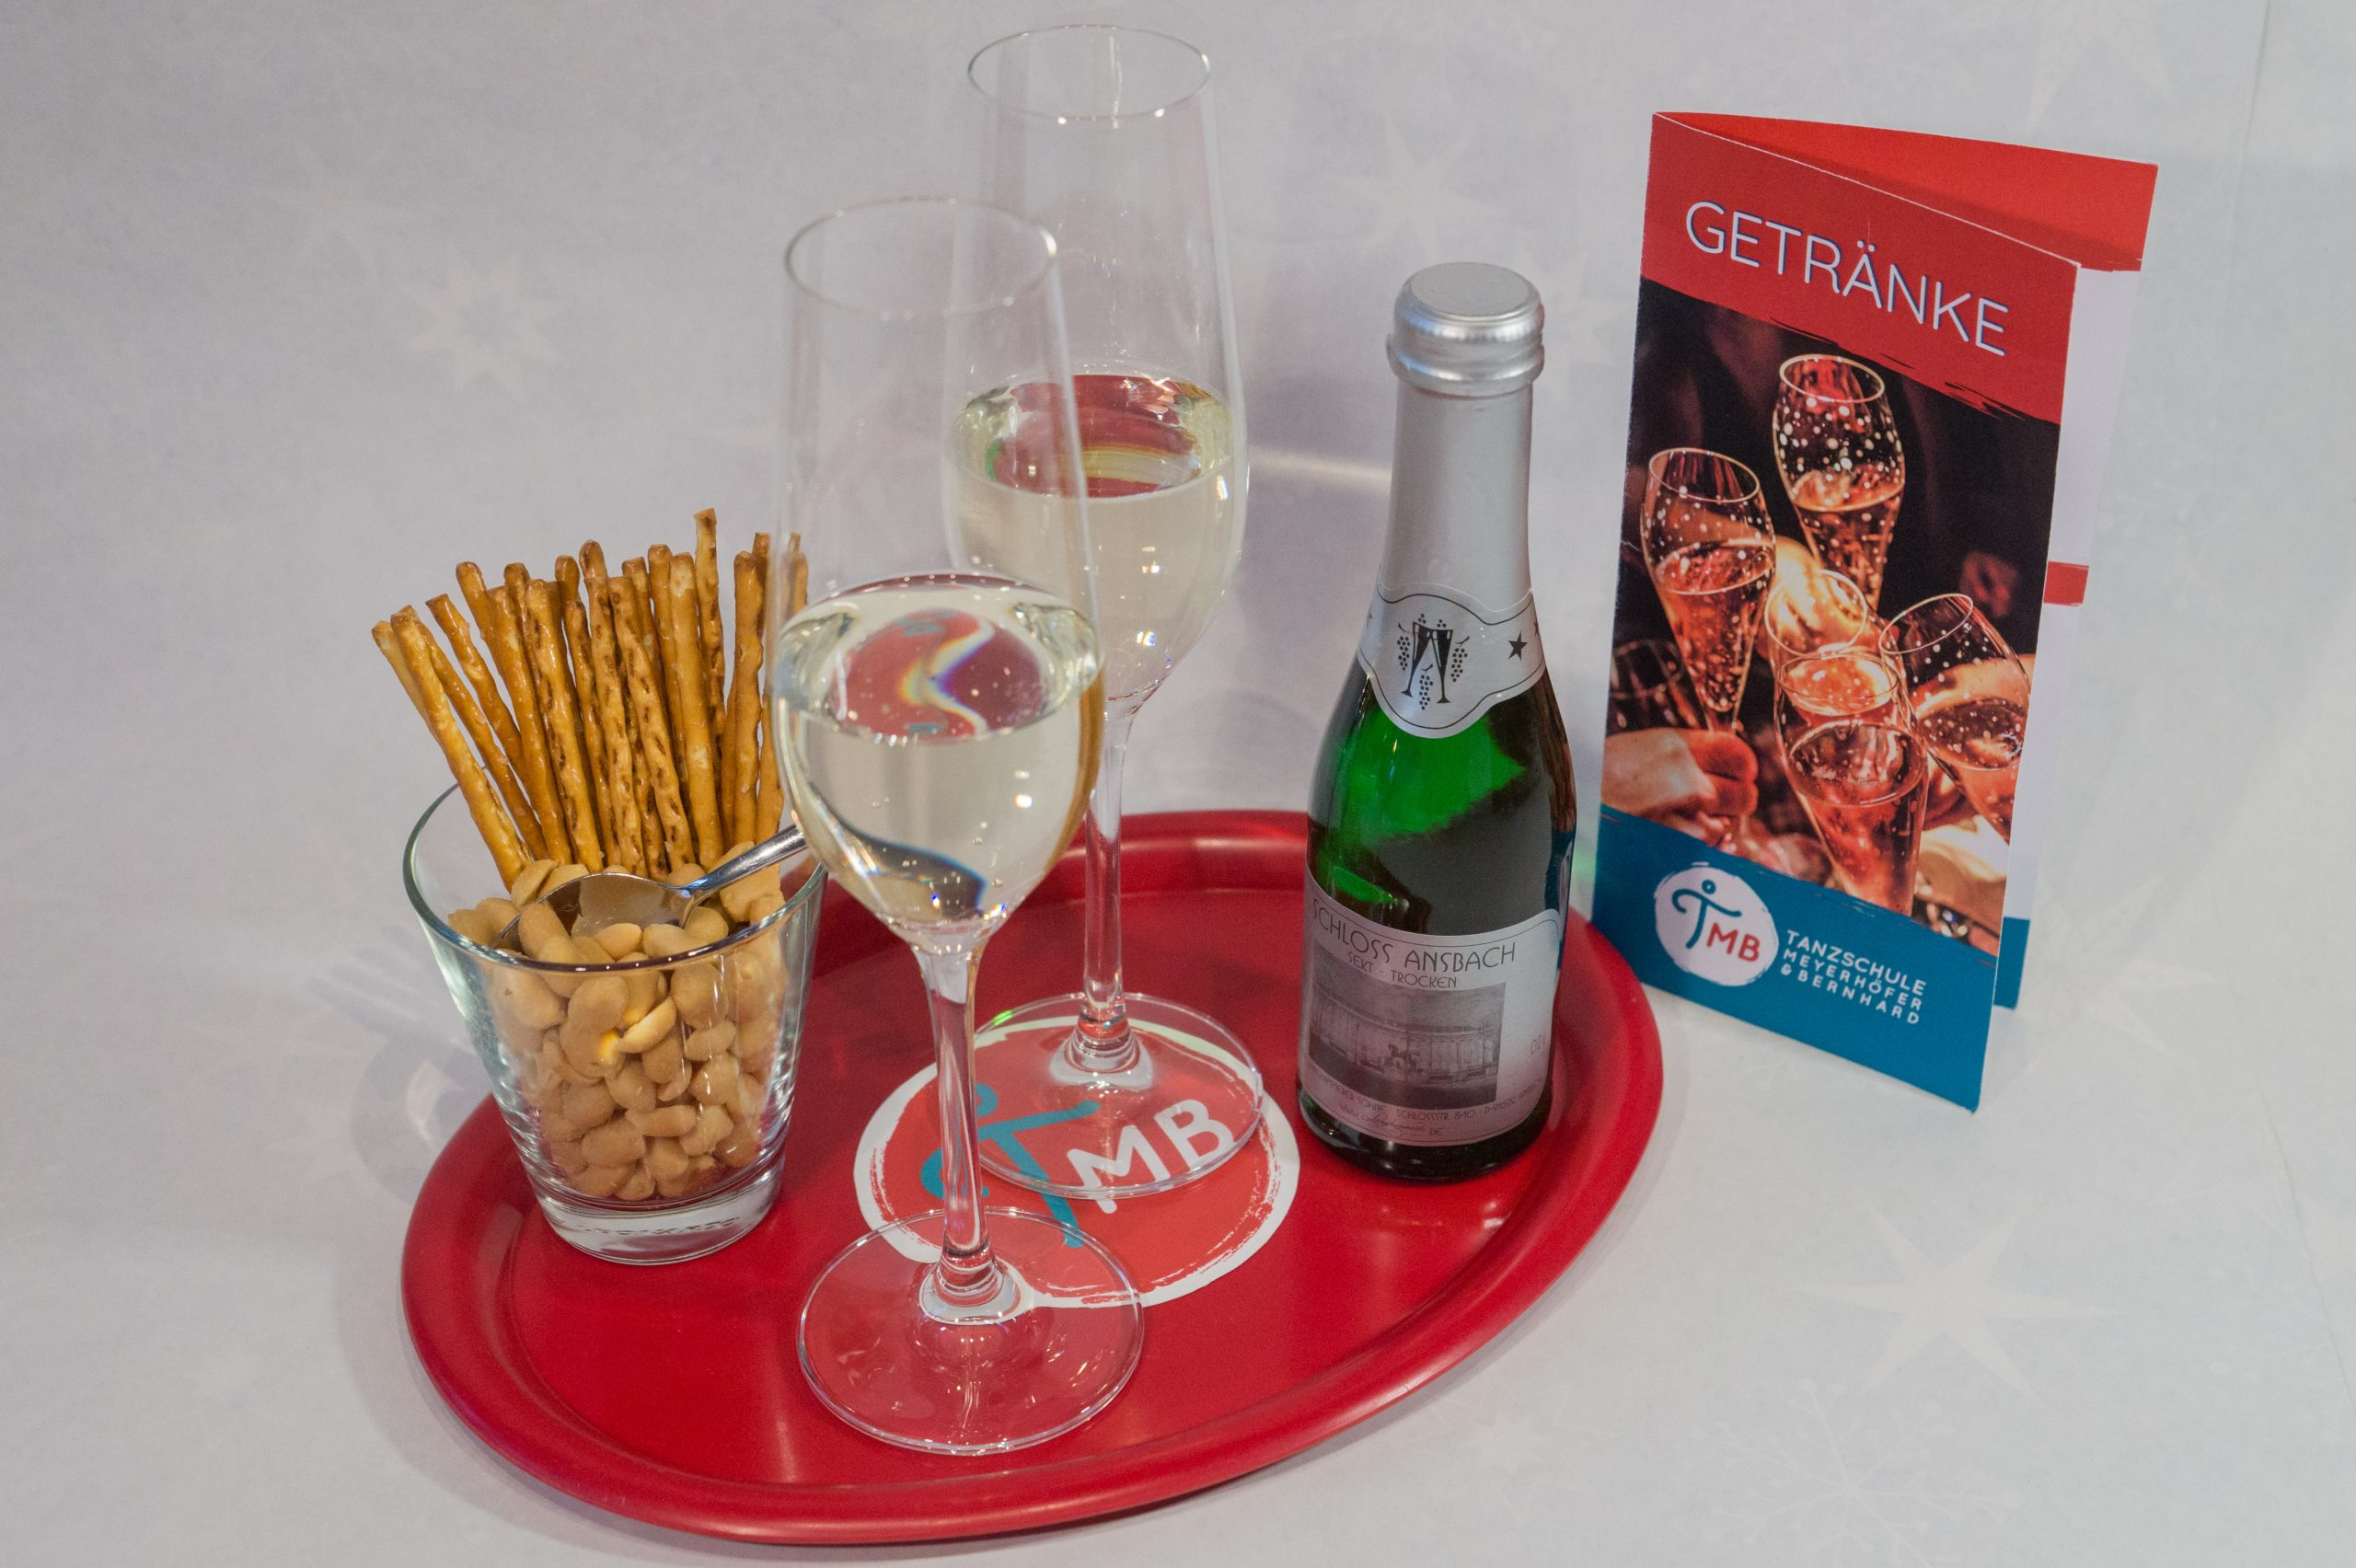 Welcome Paket Sekt & Snacks klein